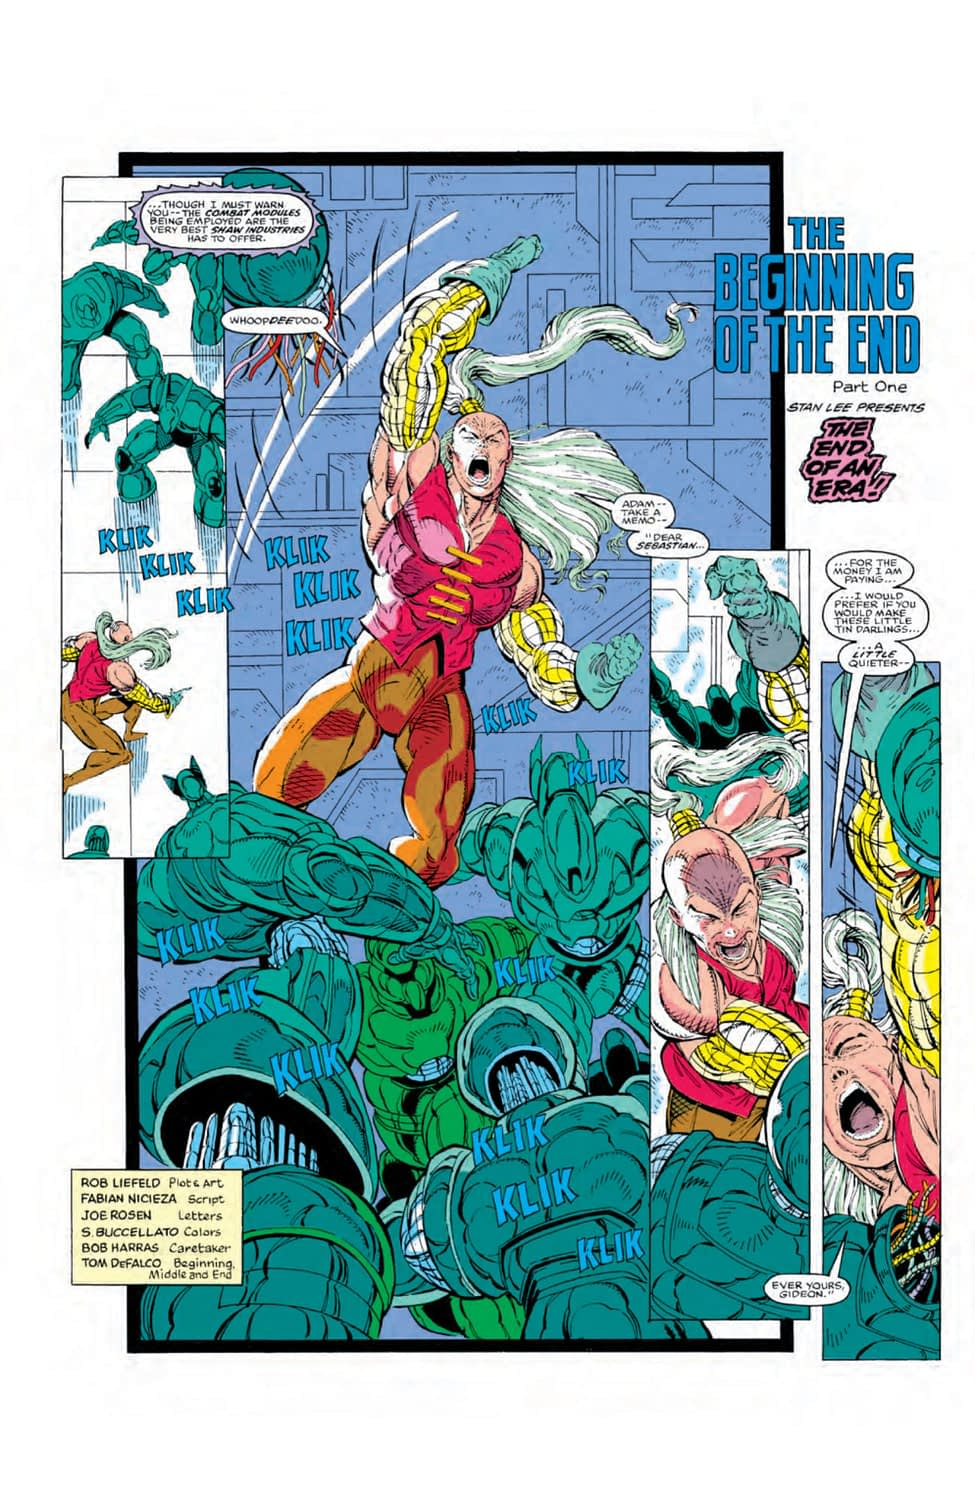 Ski or Die, Mega Man 3 Ads From New Mutants #98 Facsimile (Preview)